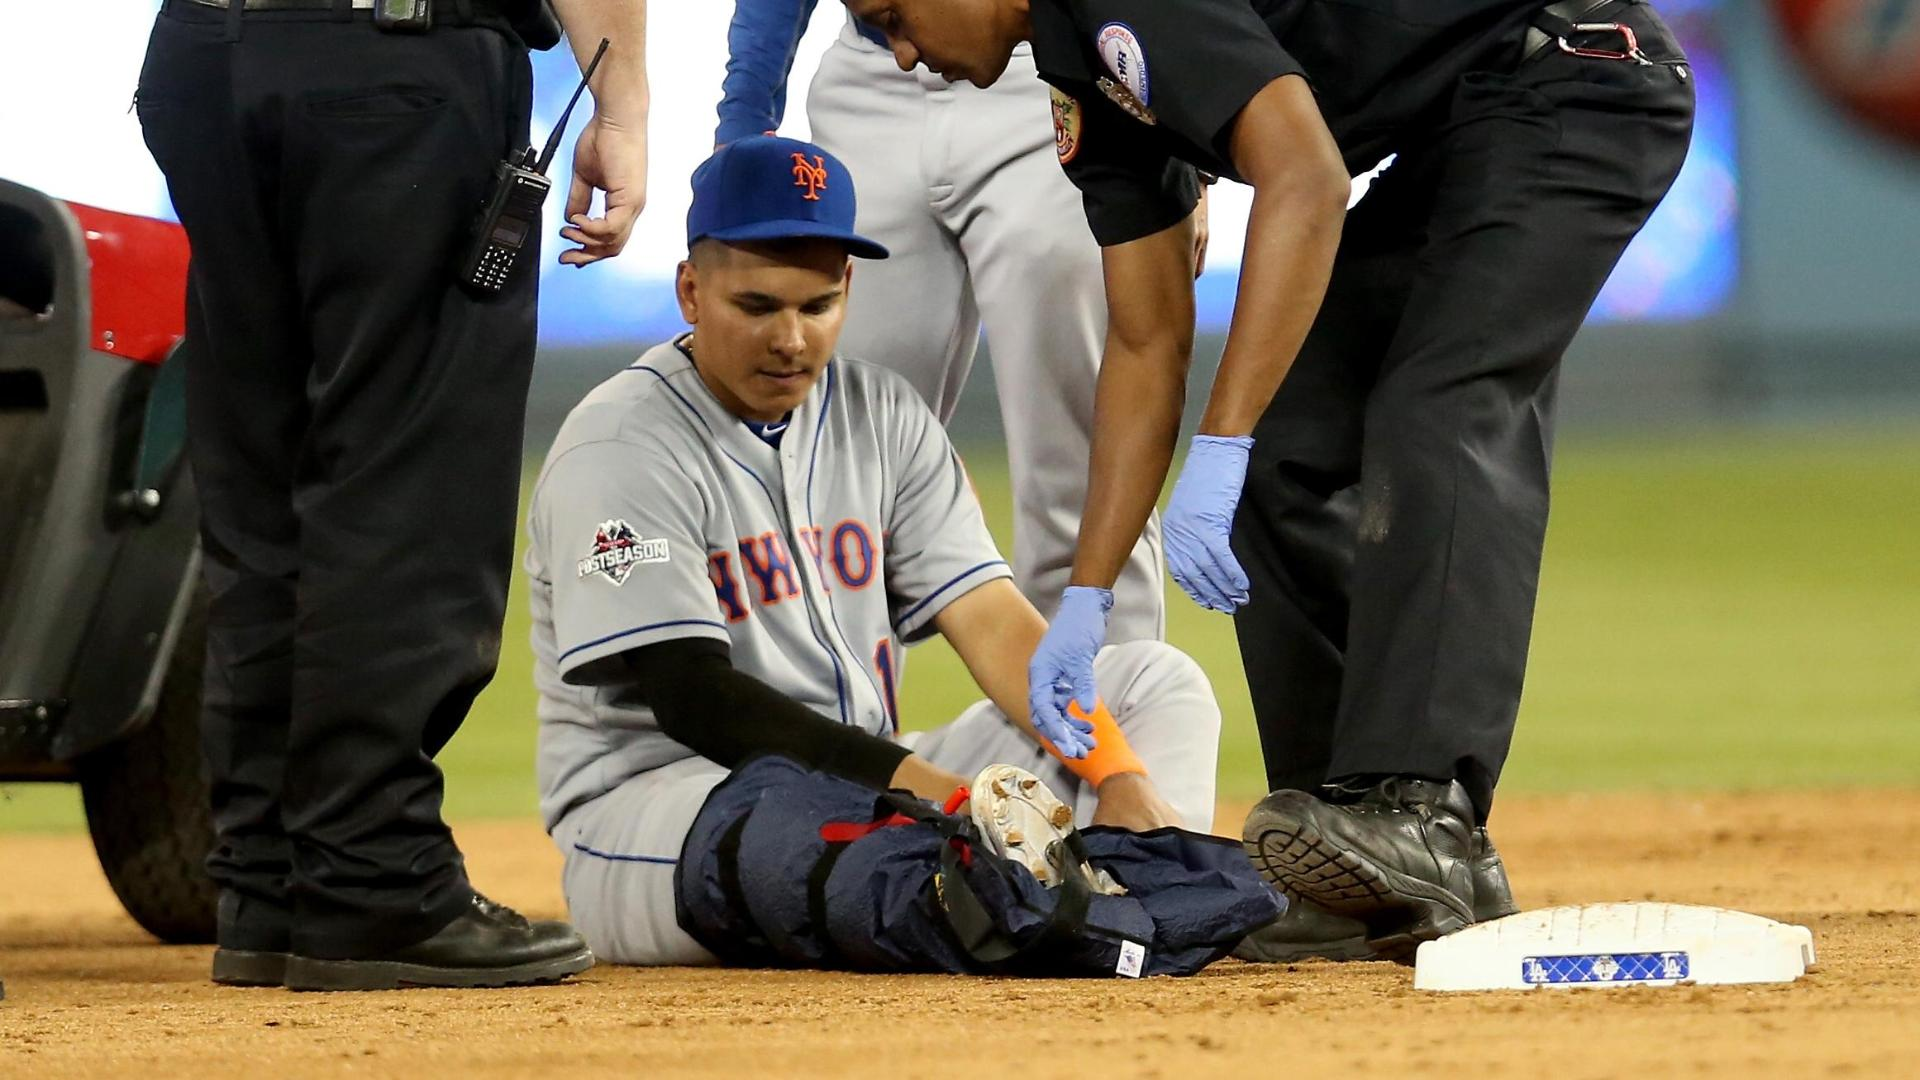 Utley's slide takes out Tejada, causes controversy